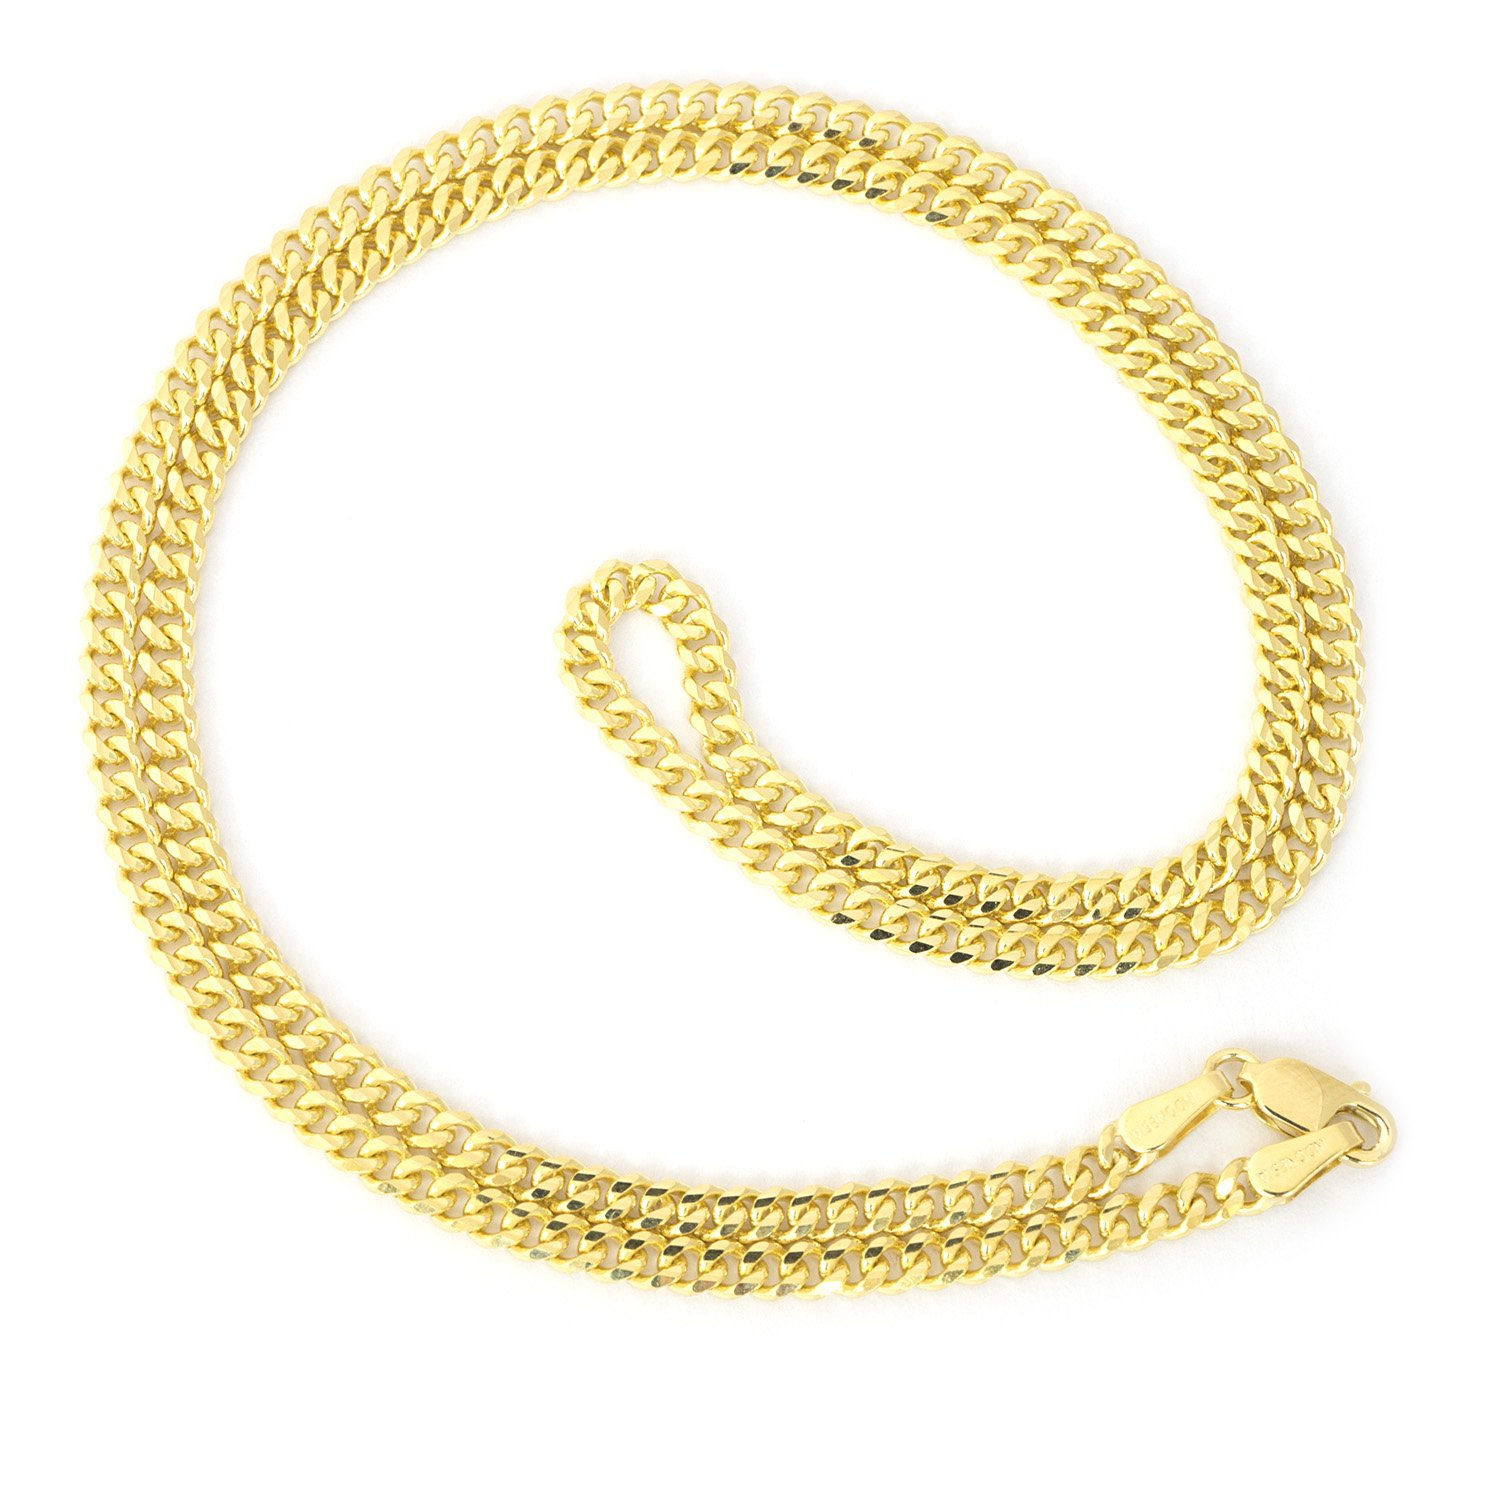 Beauniq 14k Yellow Gold 3.0mm Gourmette Curb Chain Necklace, 24''